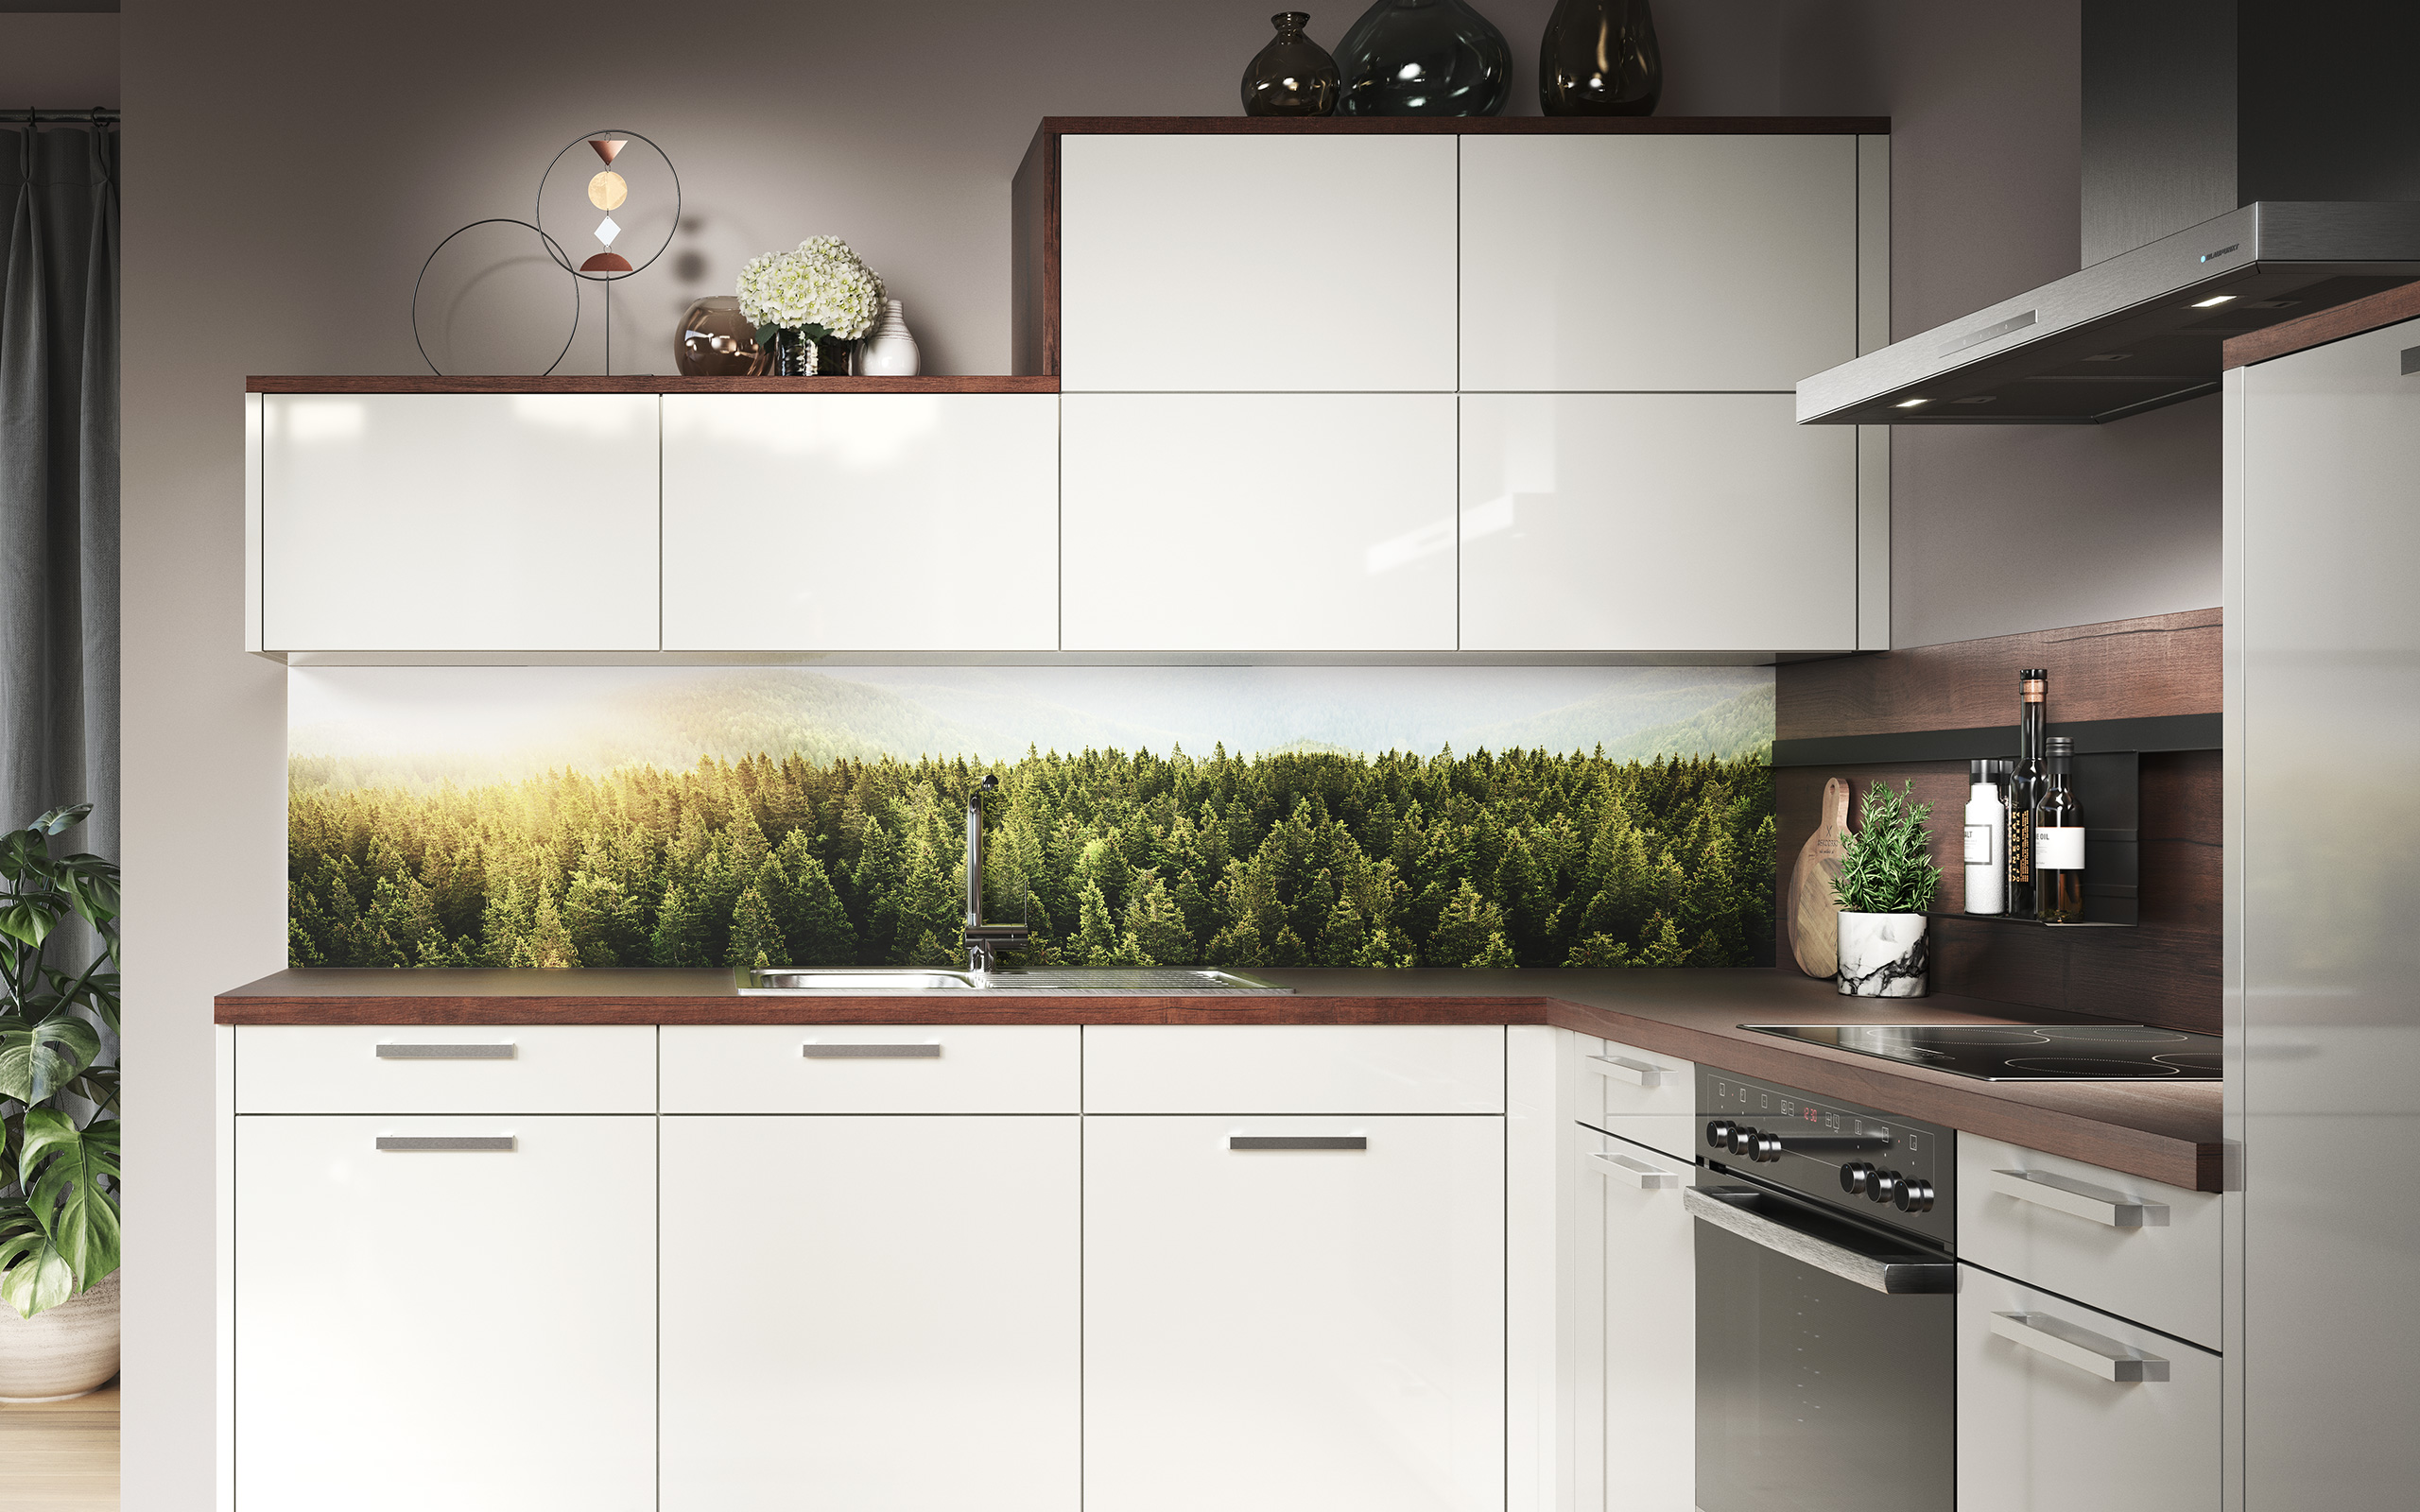 Backsplash panel forest